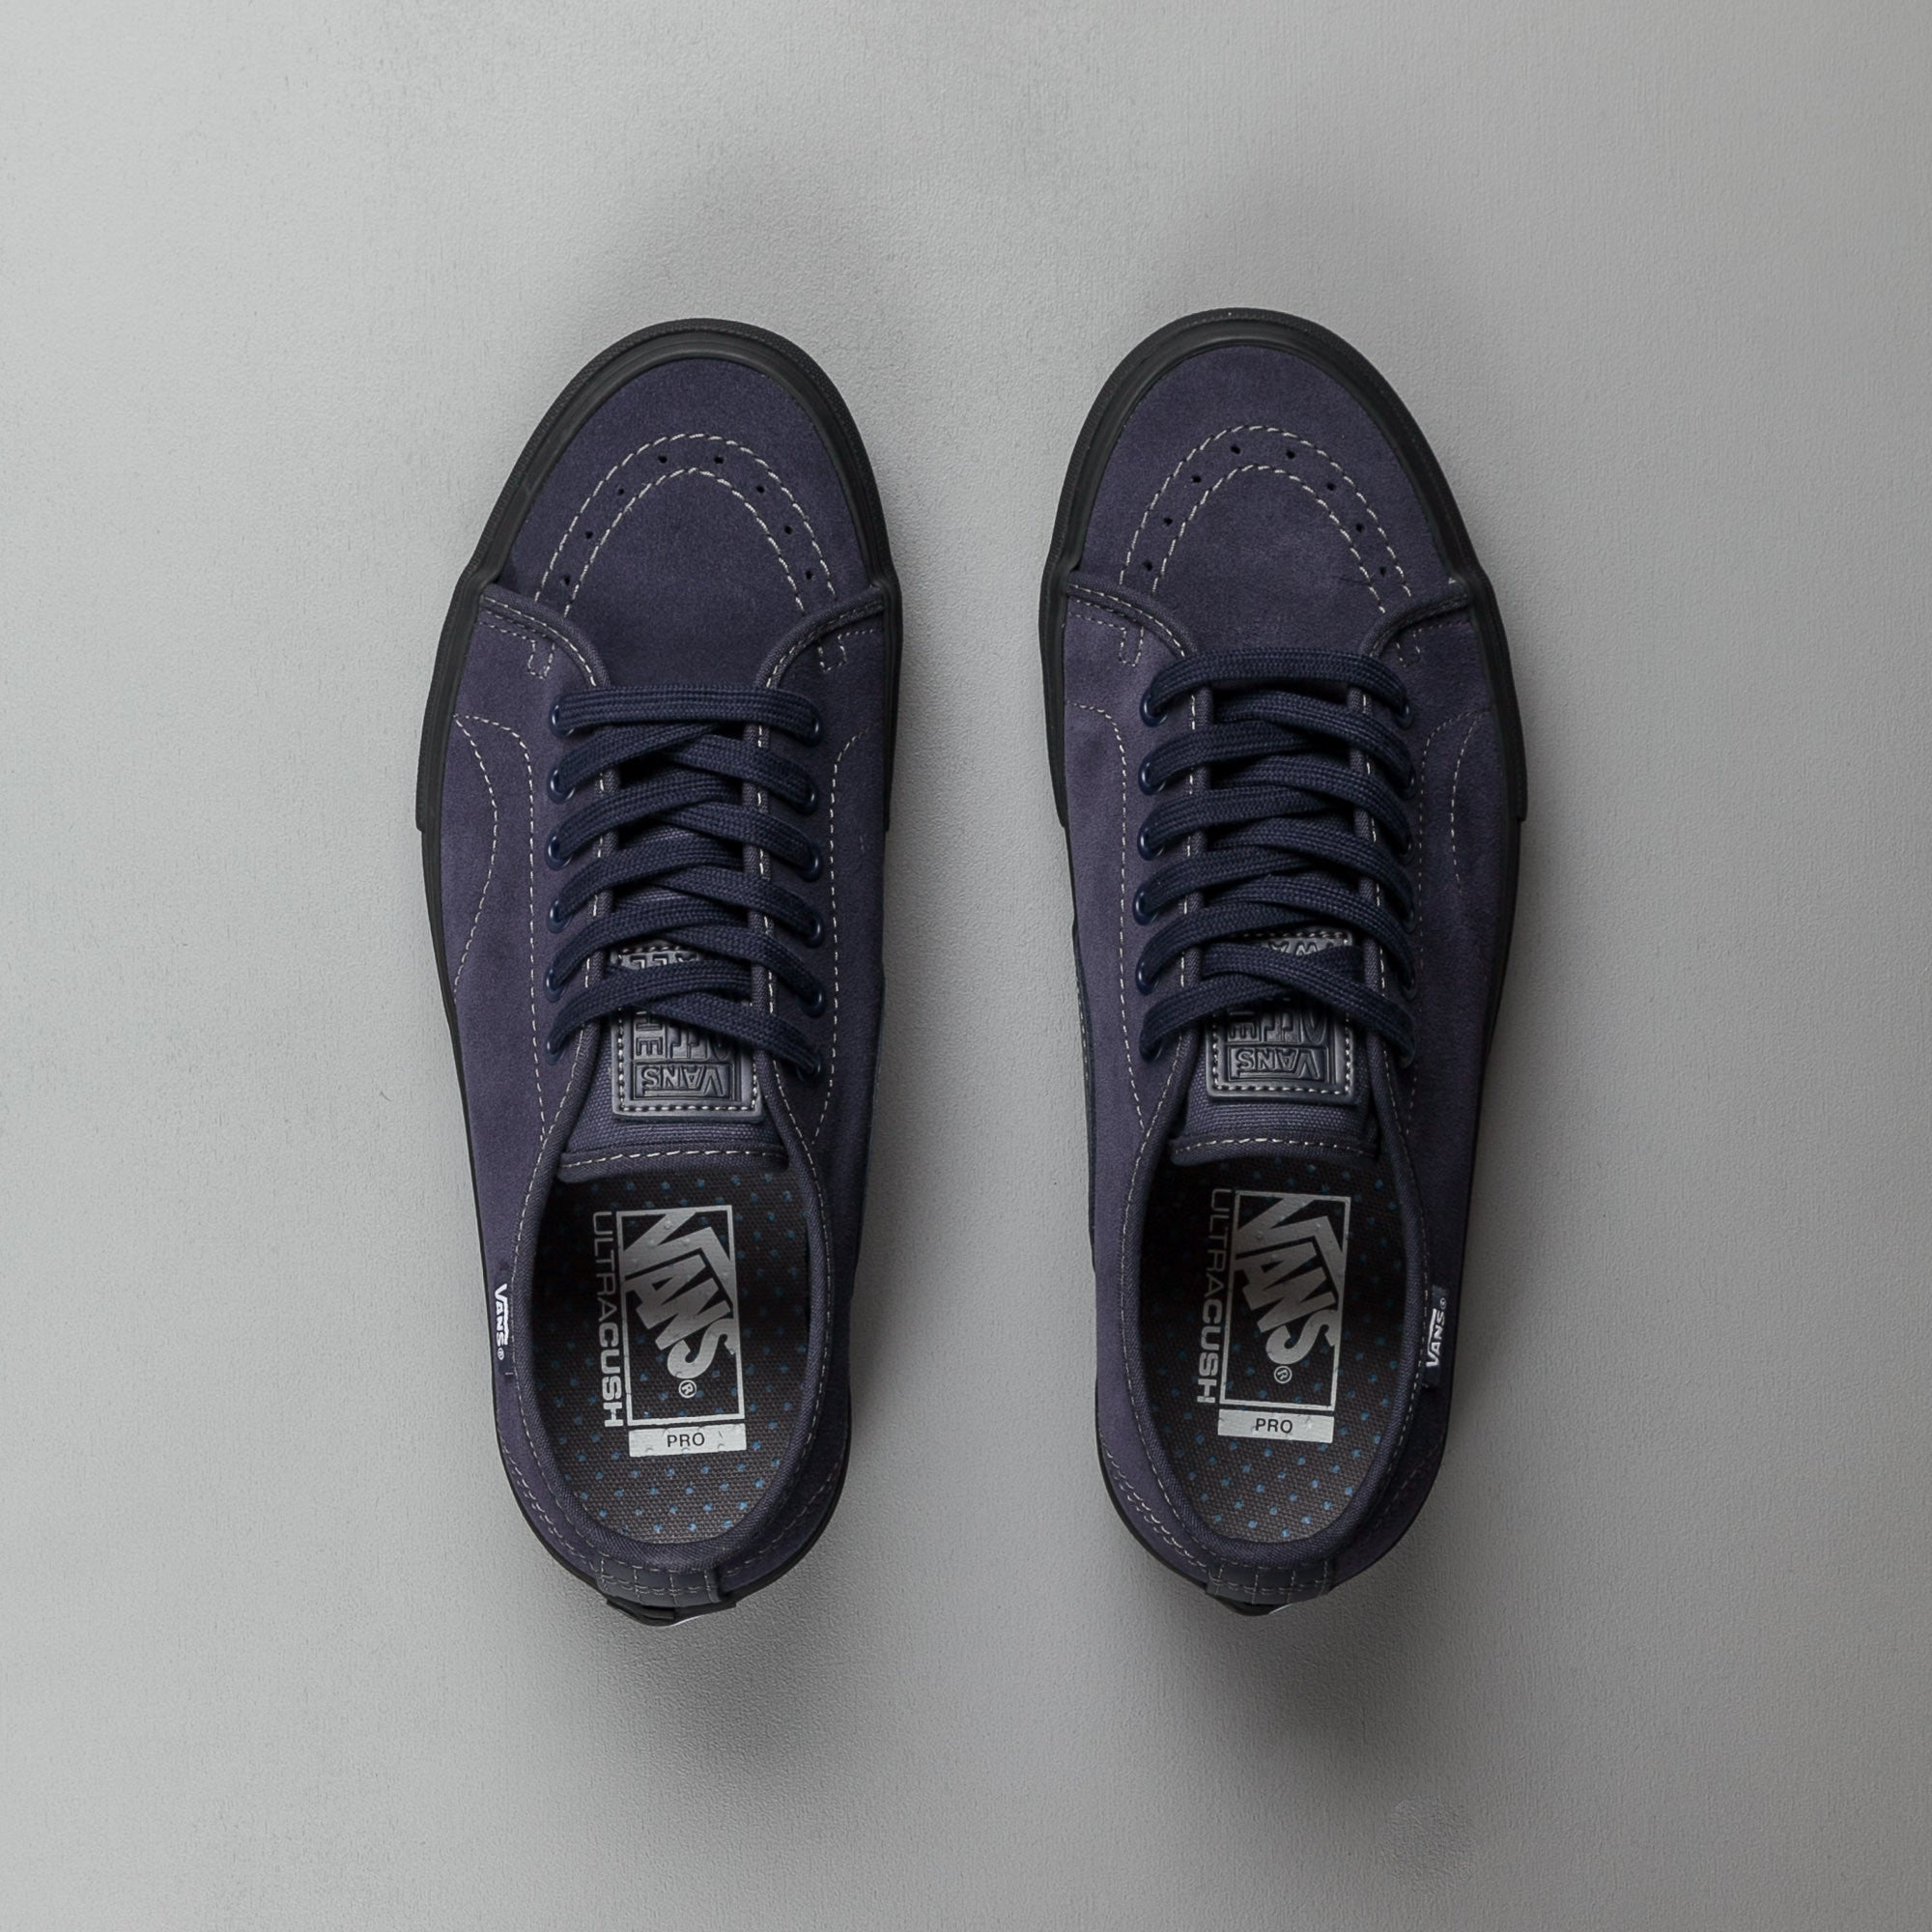 Vans AV Classic Shoes - Midnight Navy / Black